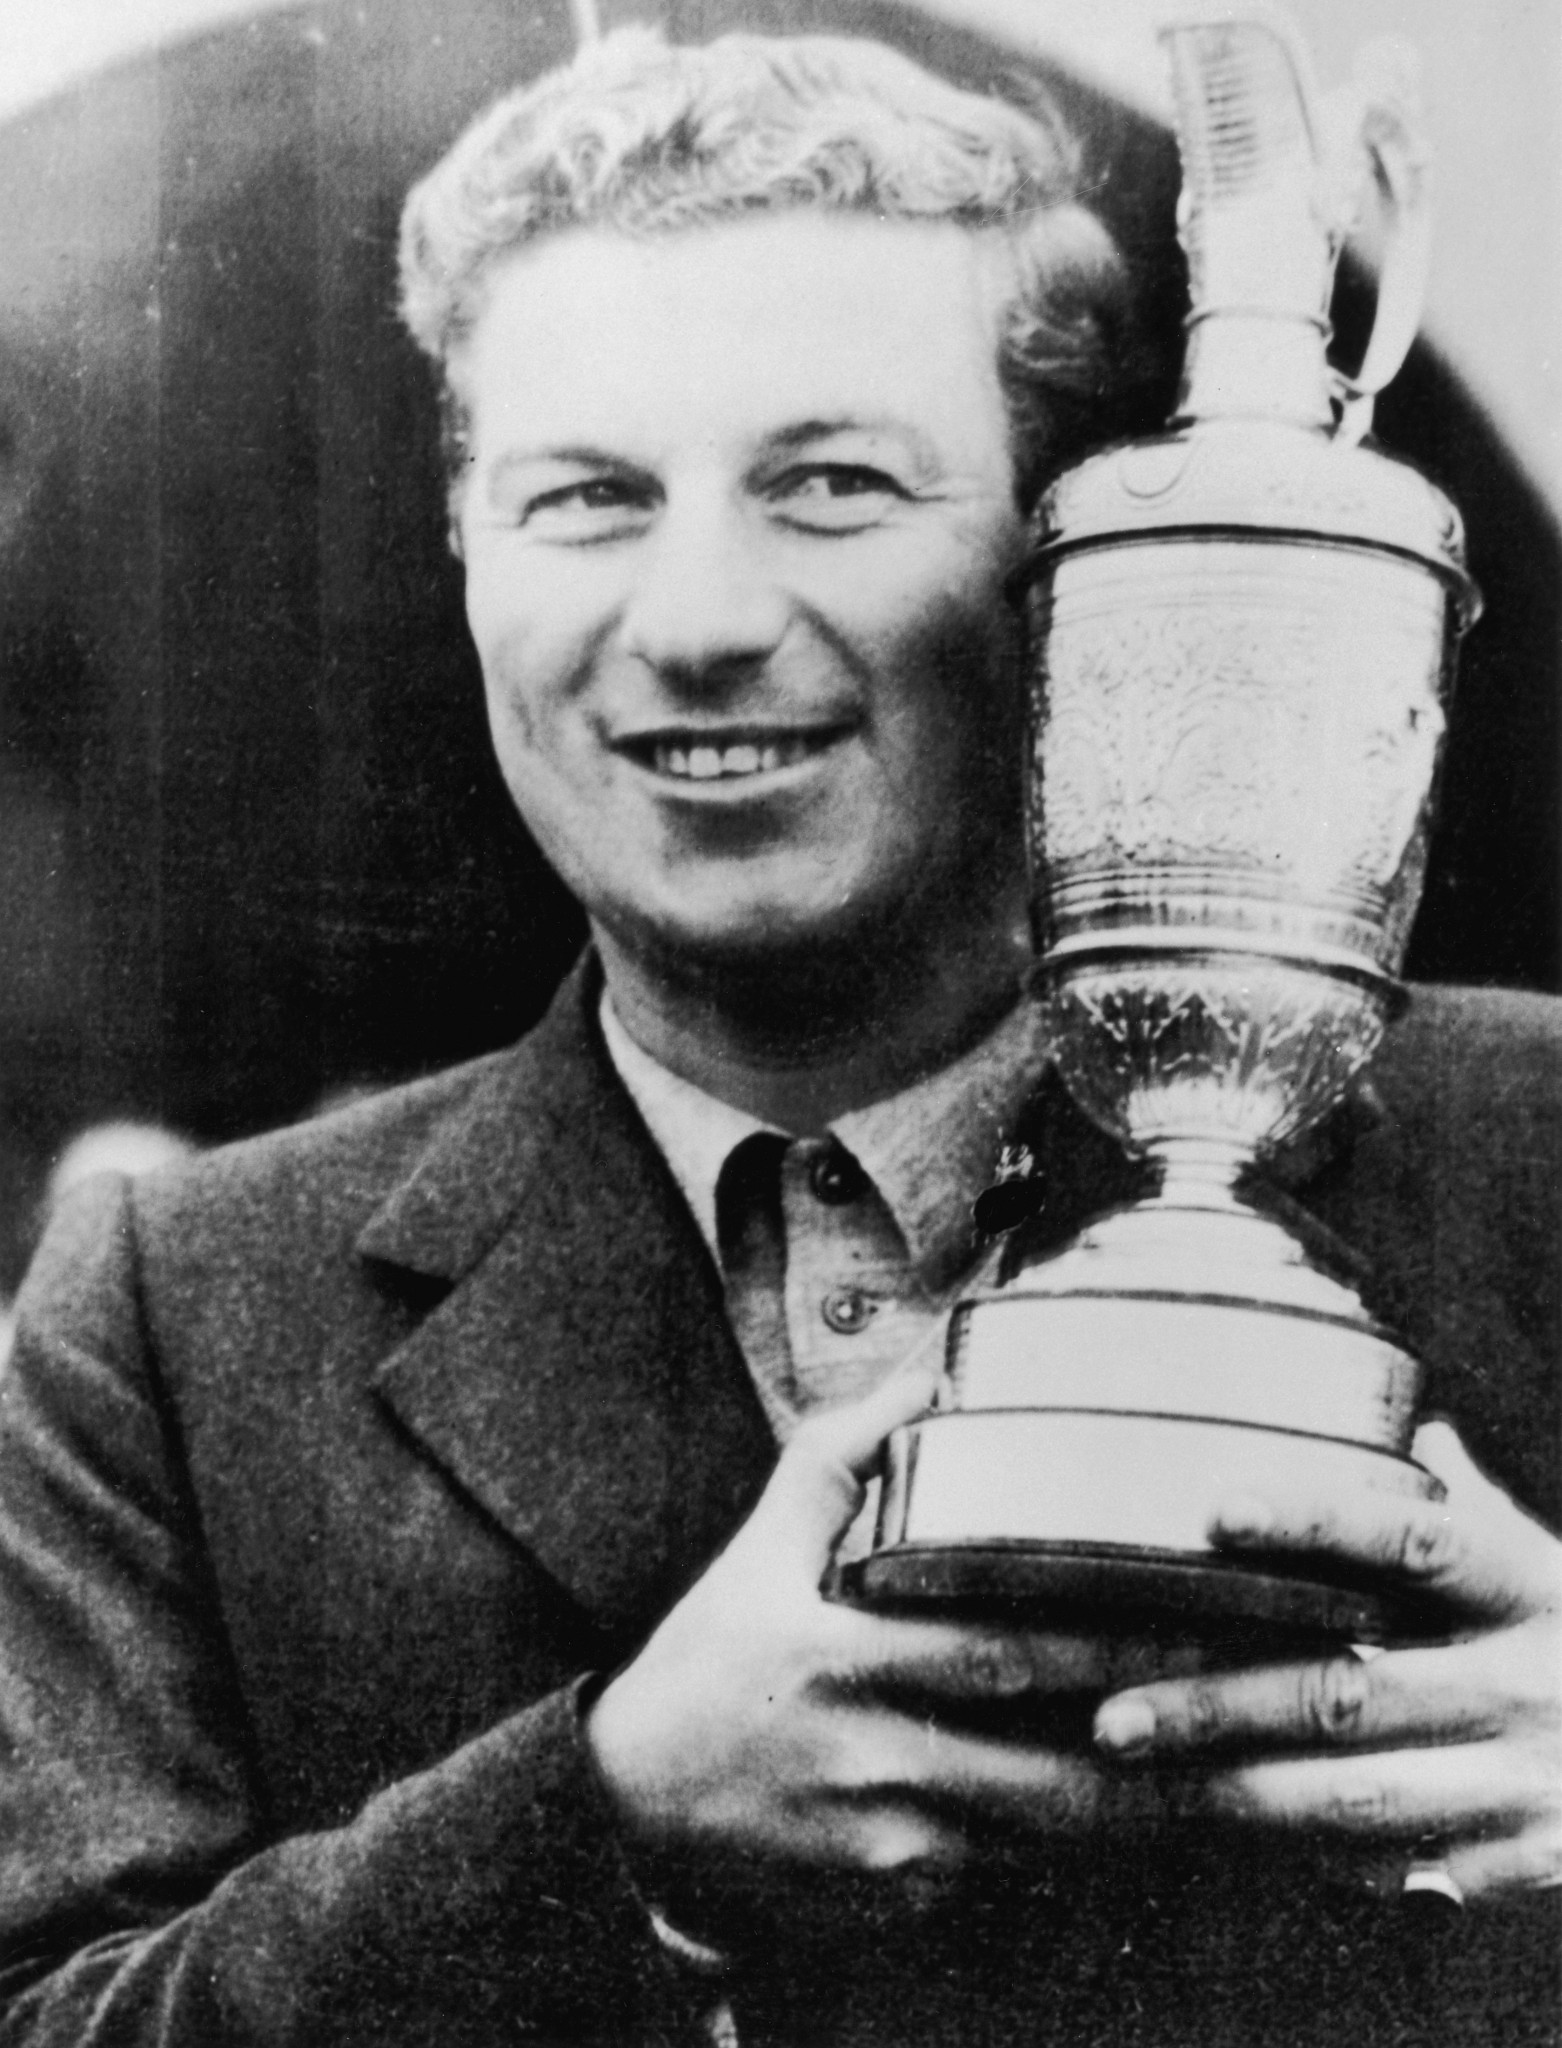 Peter Thomson, who won the Open Championship three years in a row from 1954 to 1956, has died at the age of 88 ©Getty Images